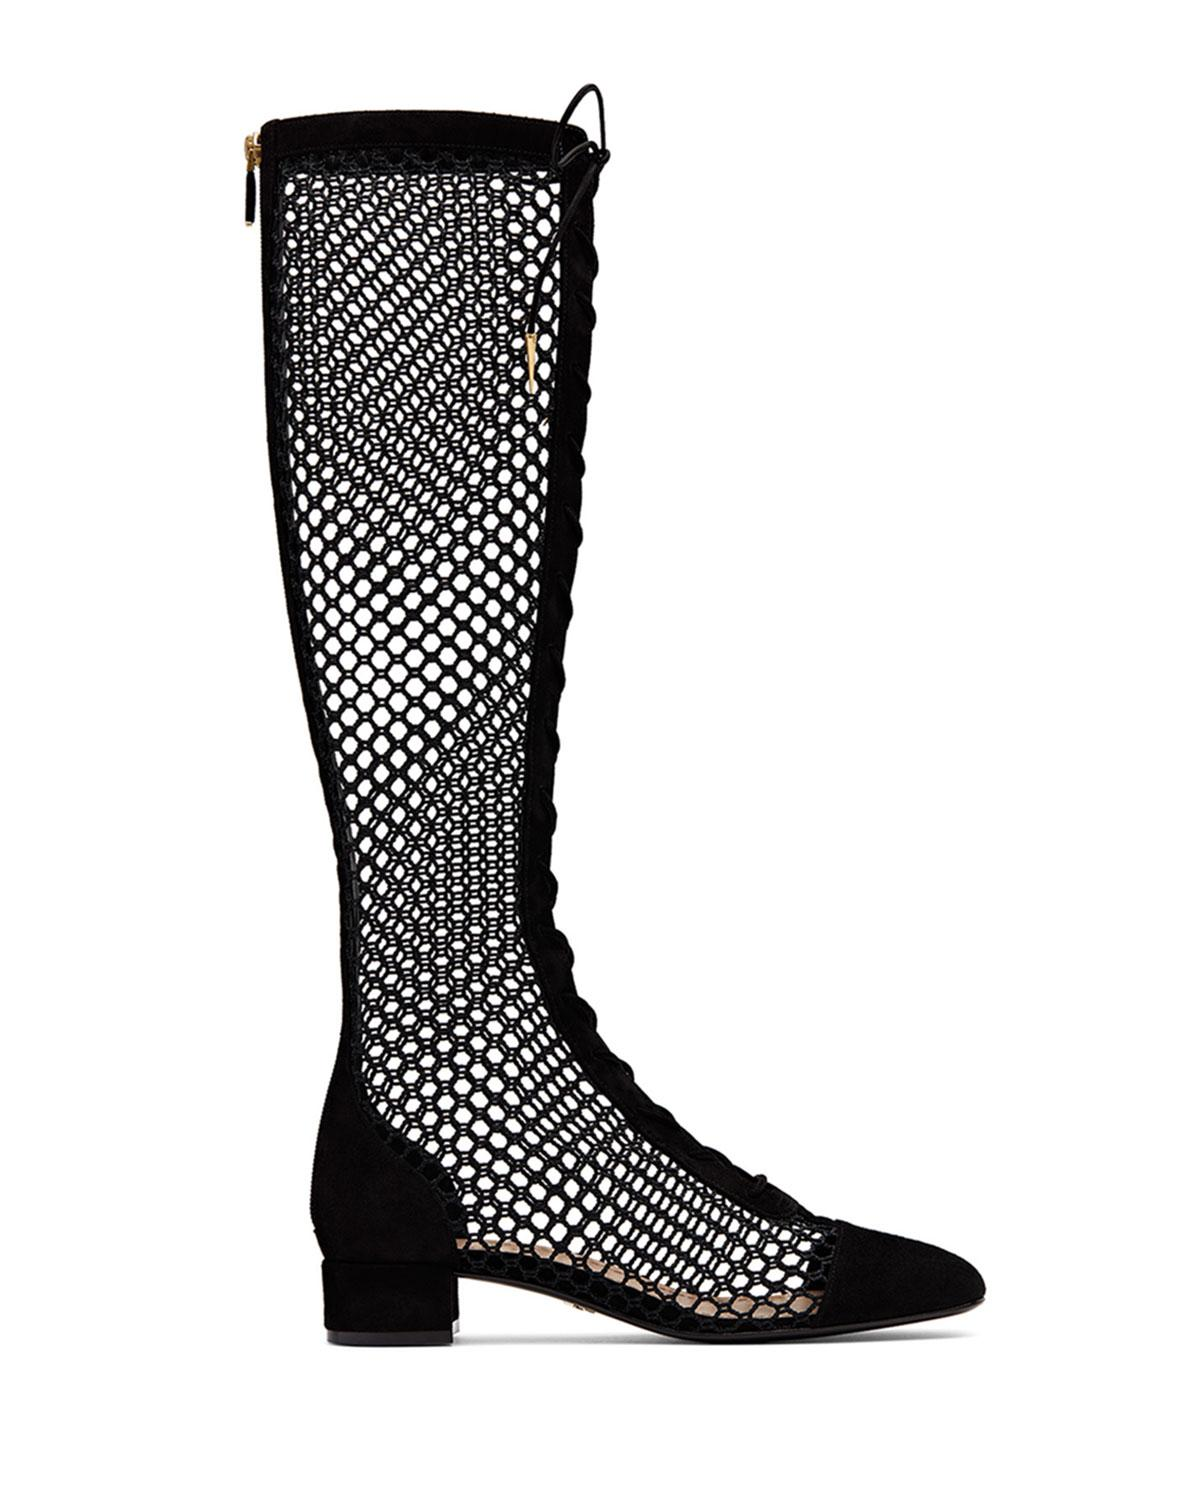 Womens Boots New Fashion Style Of 27605369 Dolce Gabbana 105mm Beth Mesh Lace Peep Toe